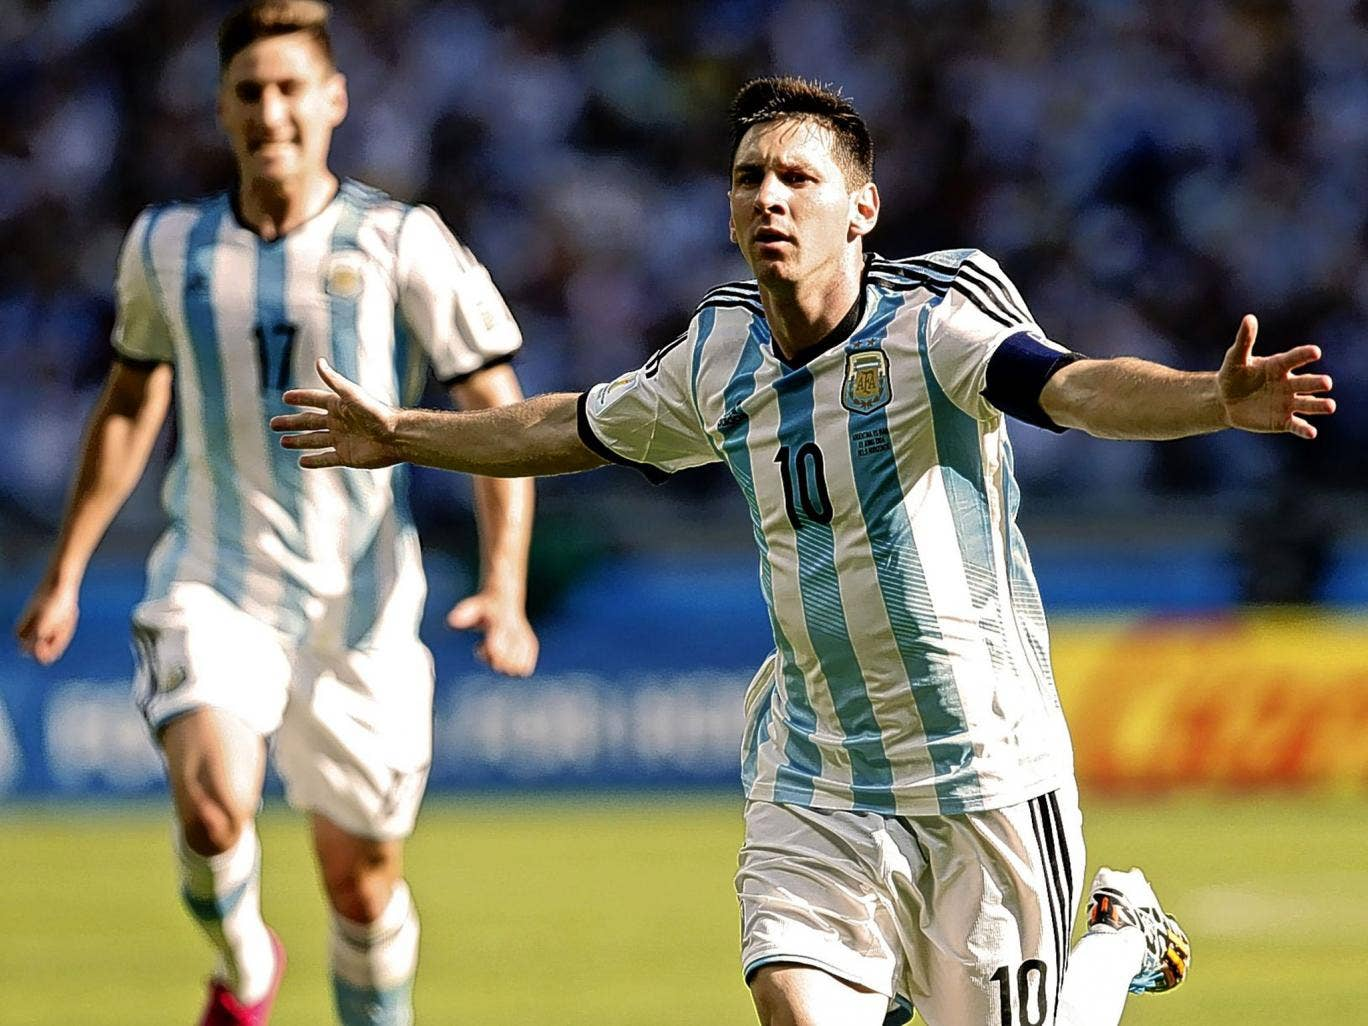 Happy ending: Lionel Messi is jubilant and relieved as he scores the goal in Belo Horizonte yesterday that put Argentina into the knockout stages